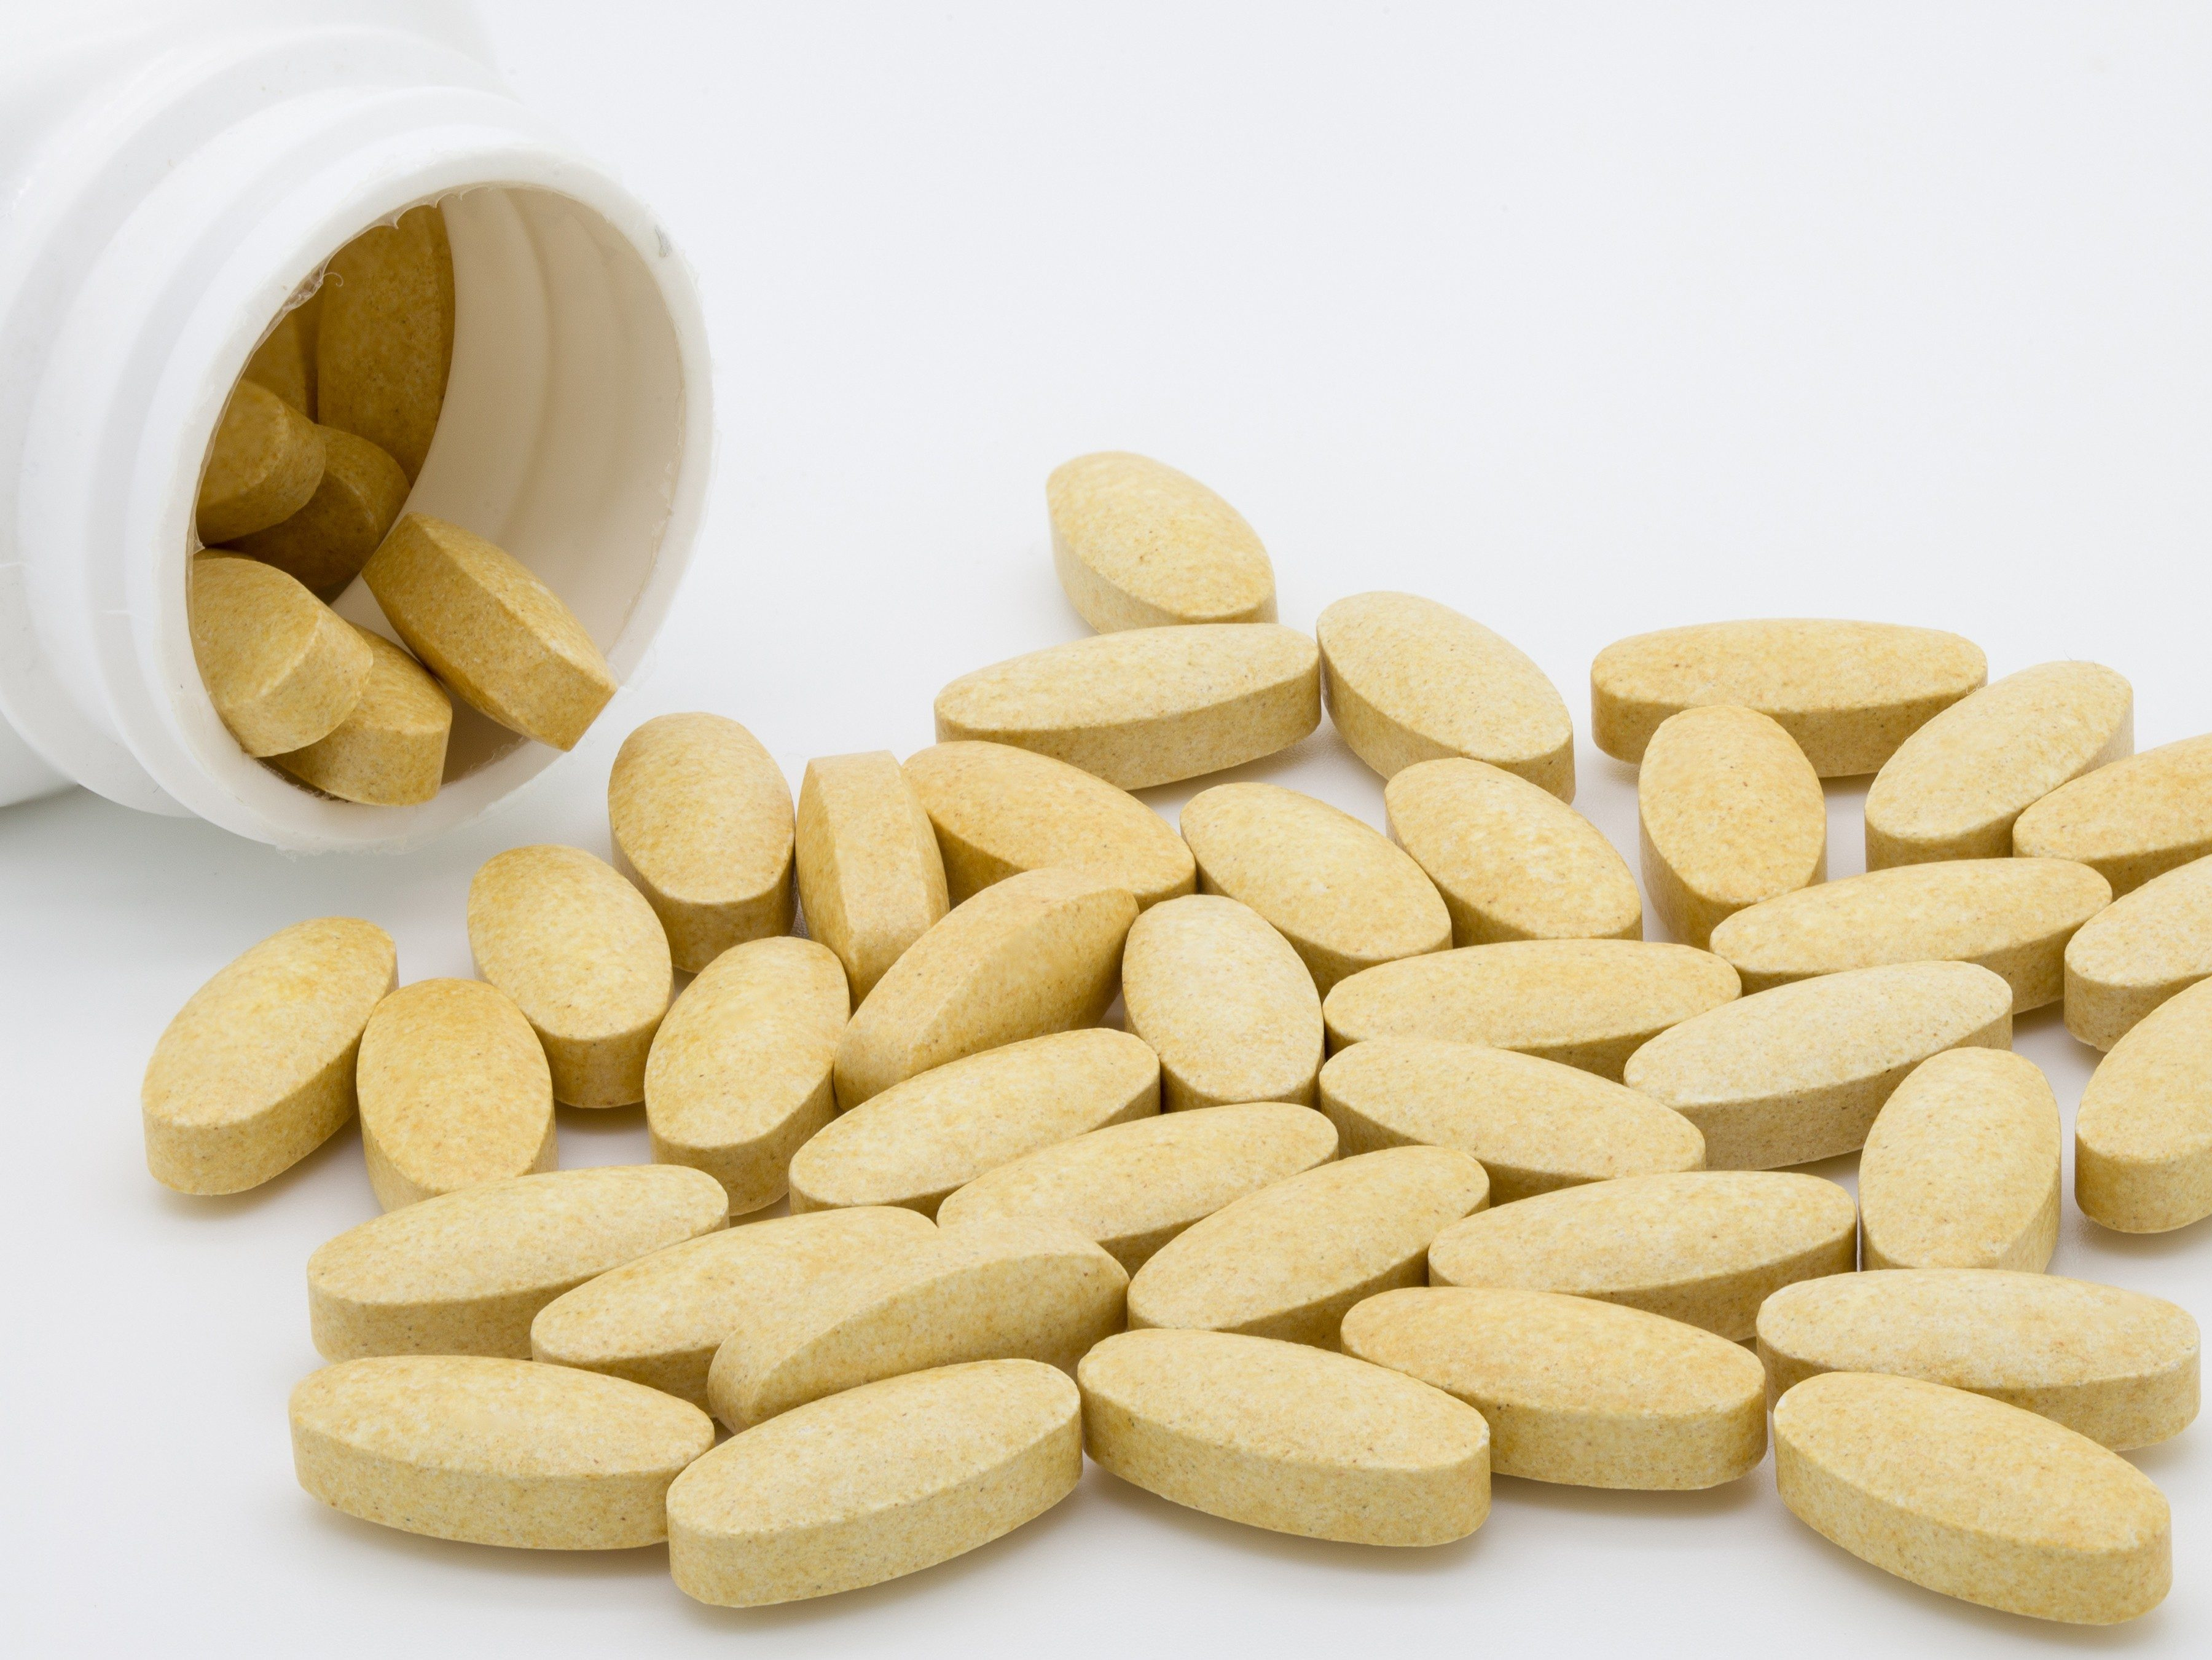 Take supplements to prevent shingles.